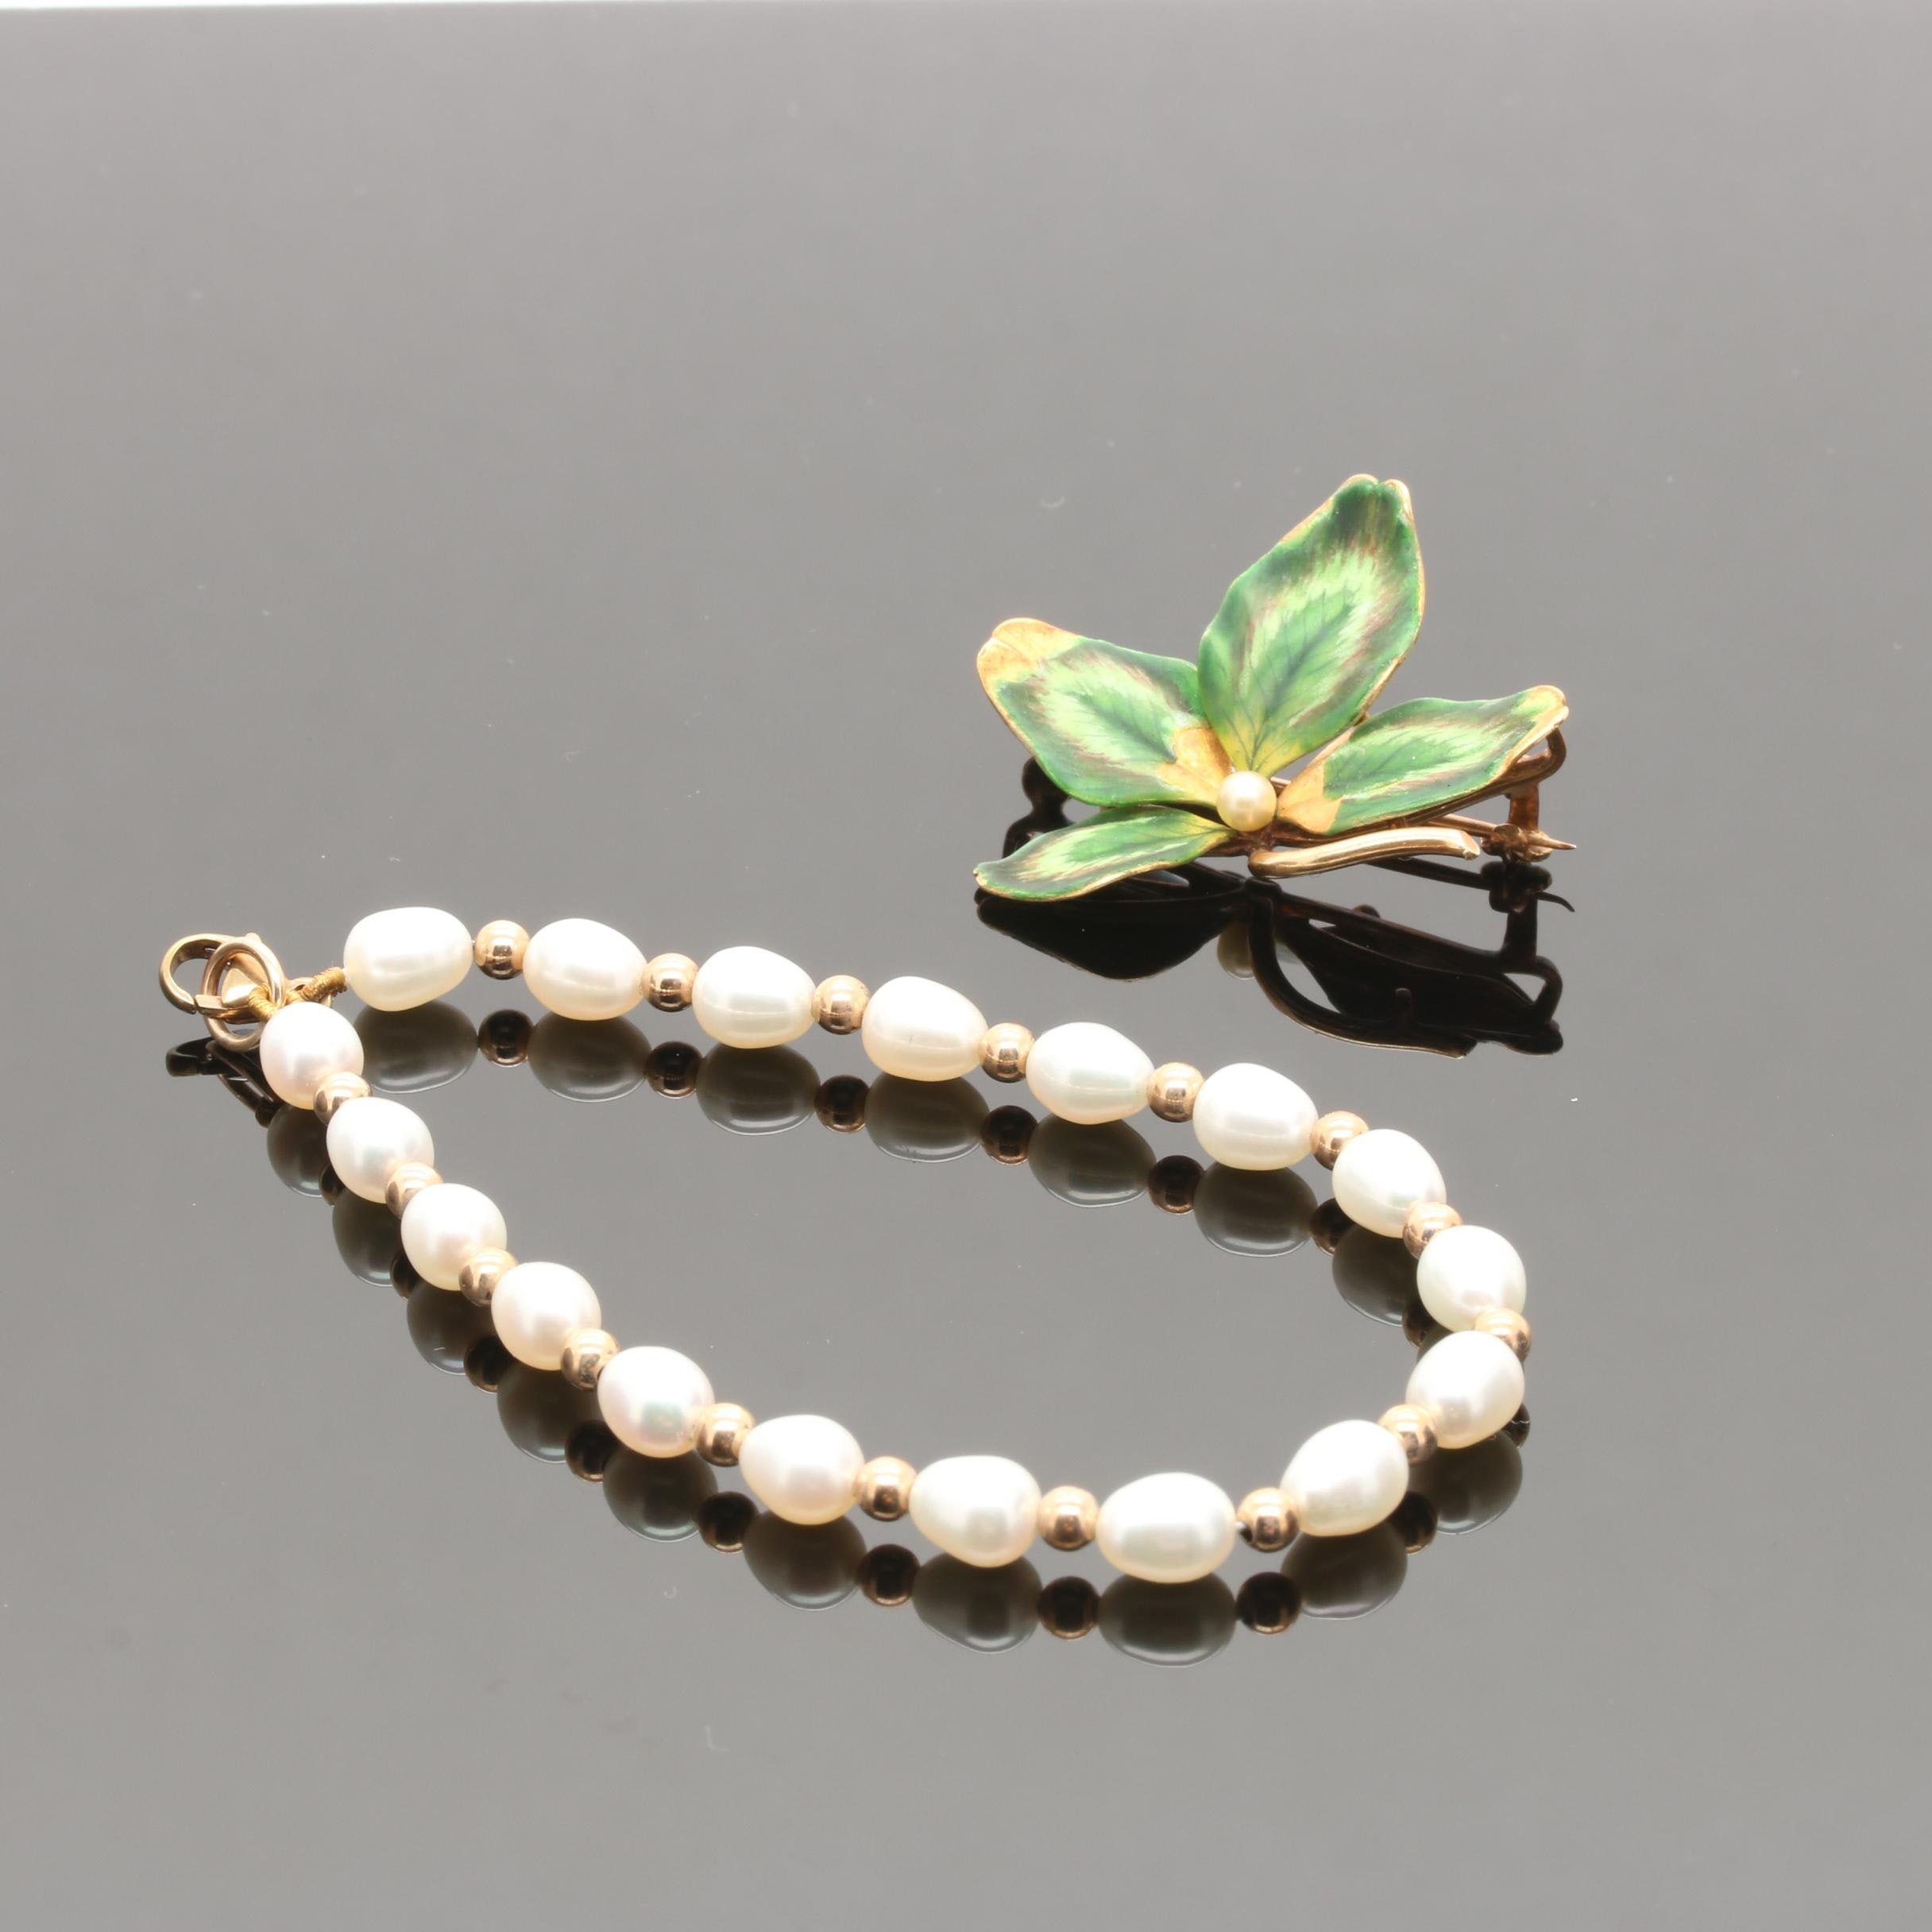 9K Yellow Gold Cultured Pearl Bracelet and 14K Enamel Brooch